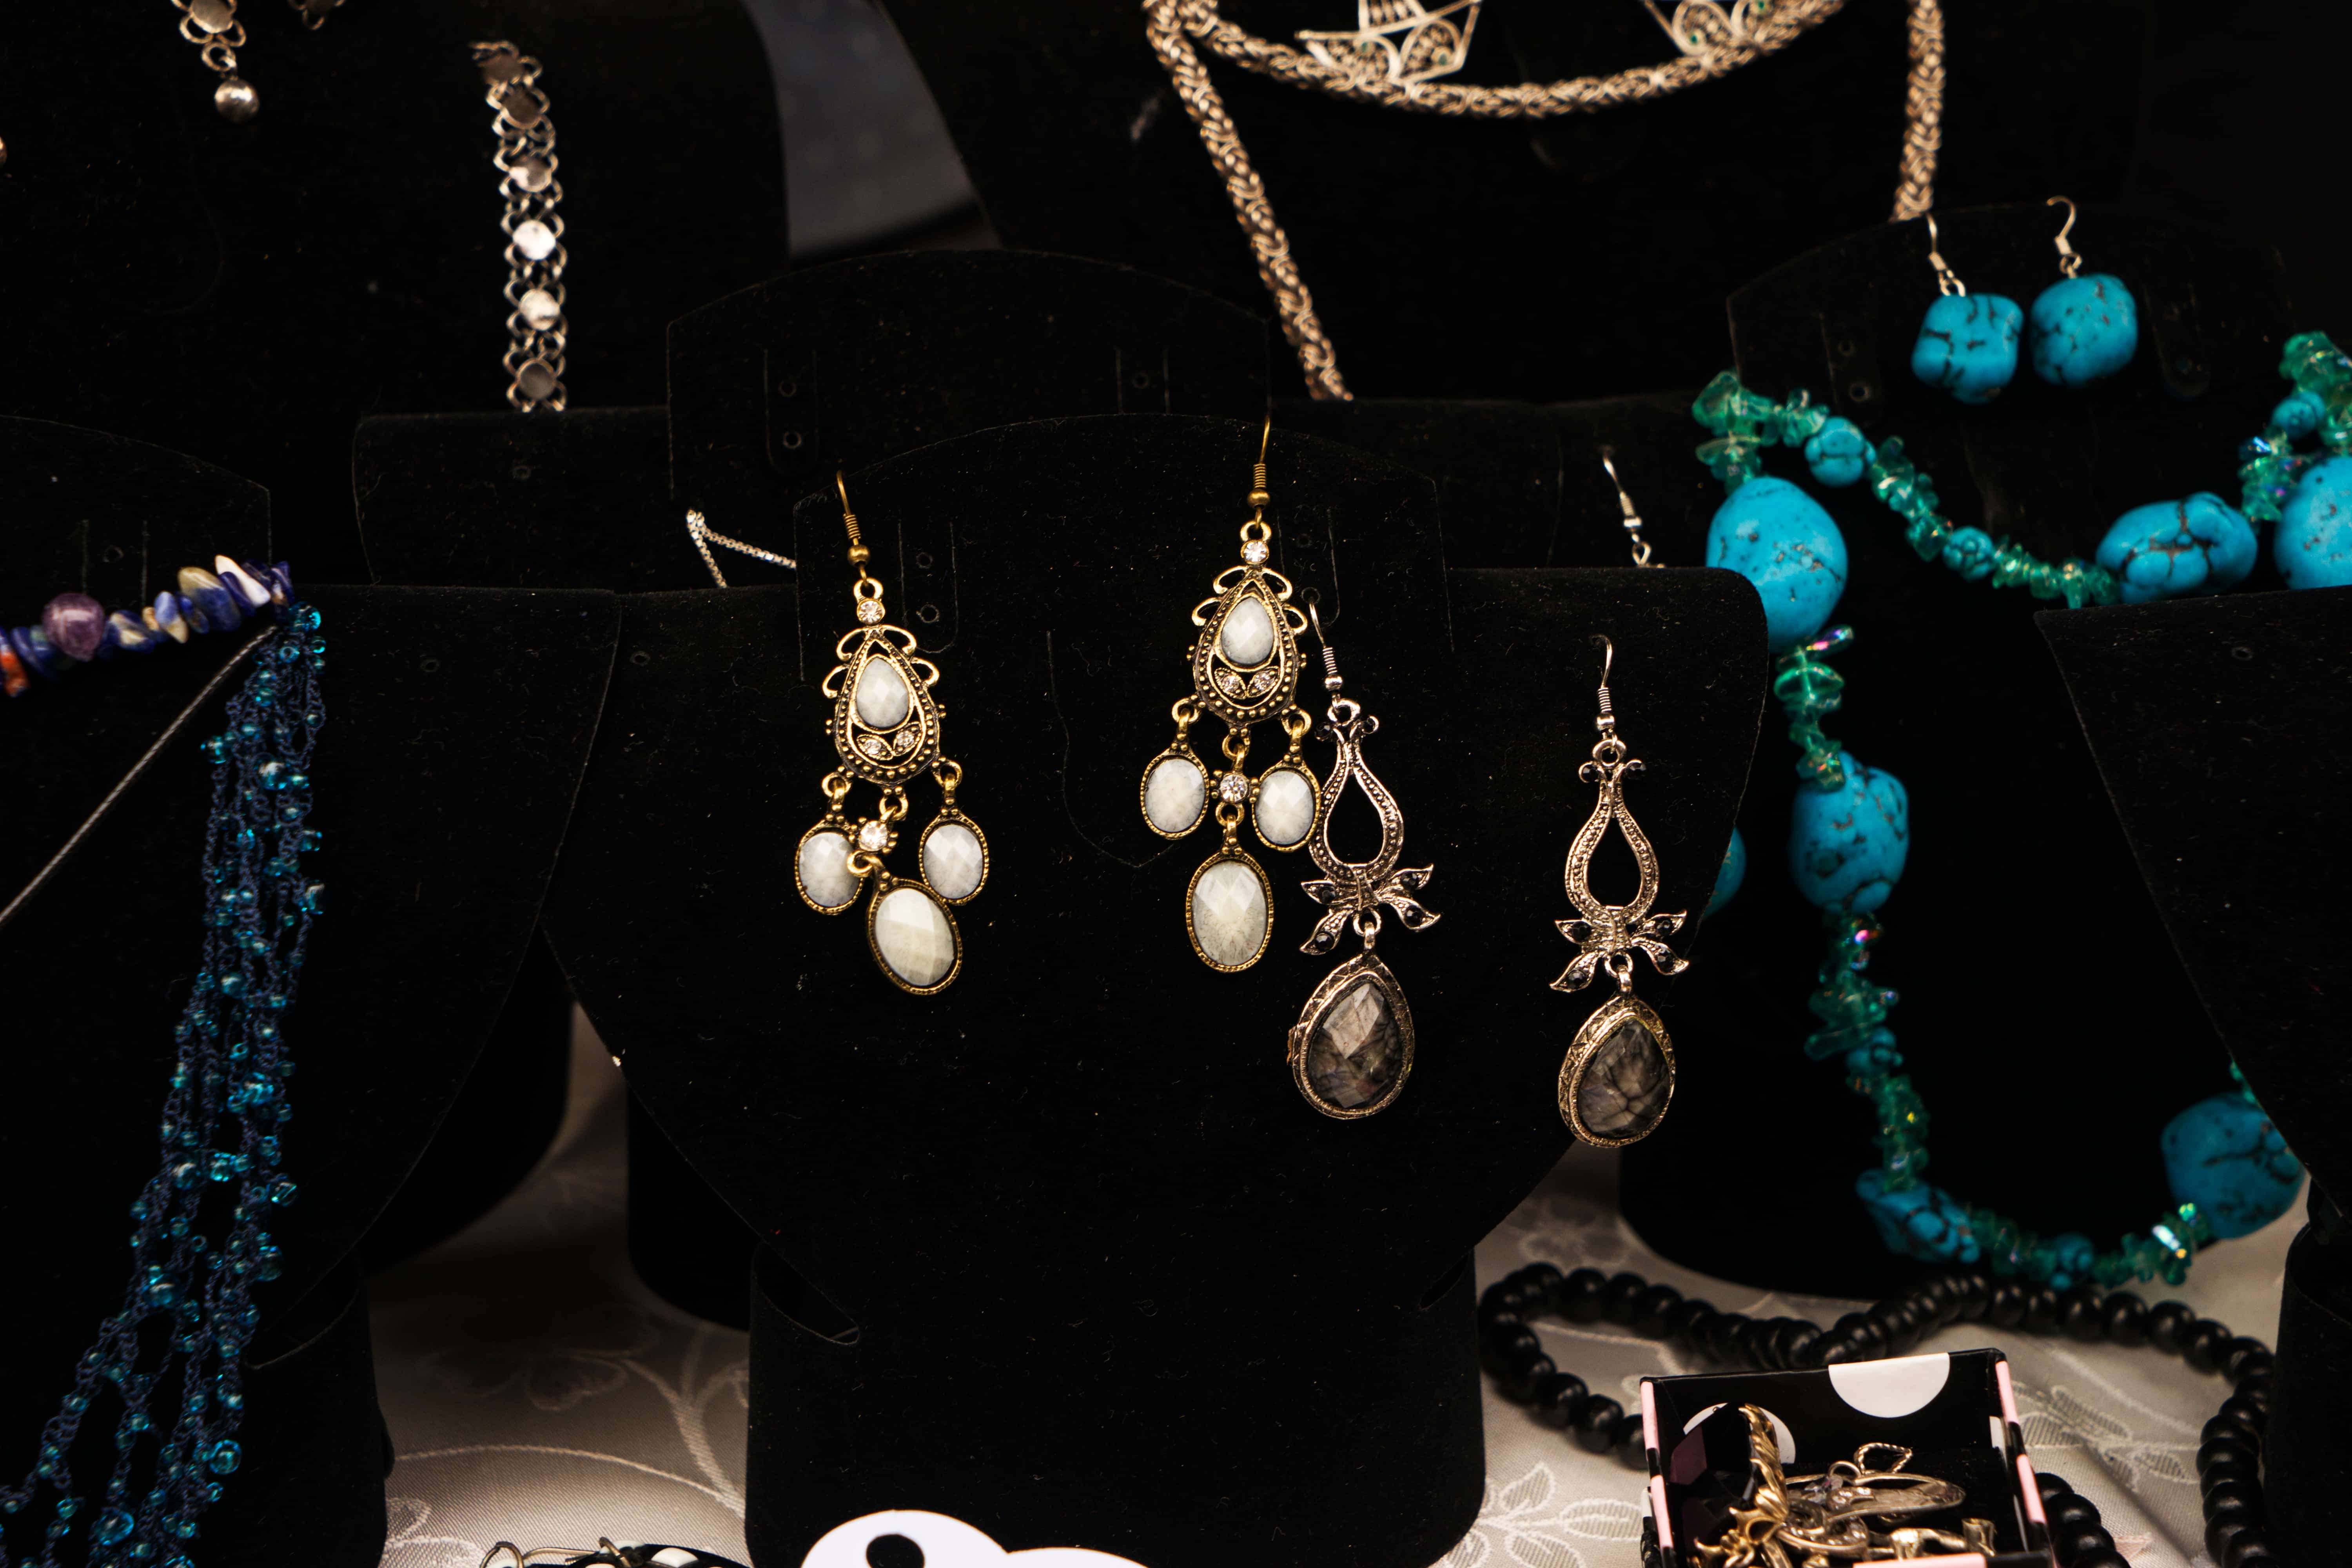 Is your jewelry jumbled in a pile? Use our ideas to properly display (and show off) your jewelry.